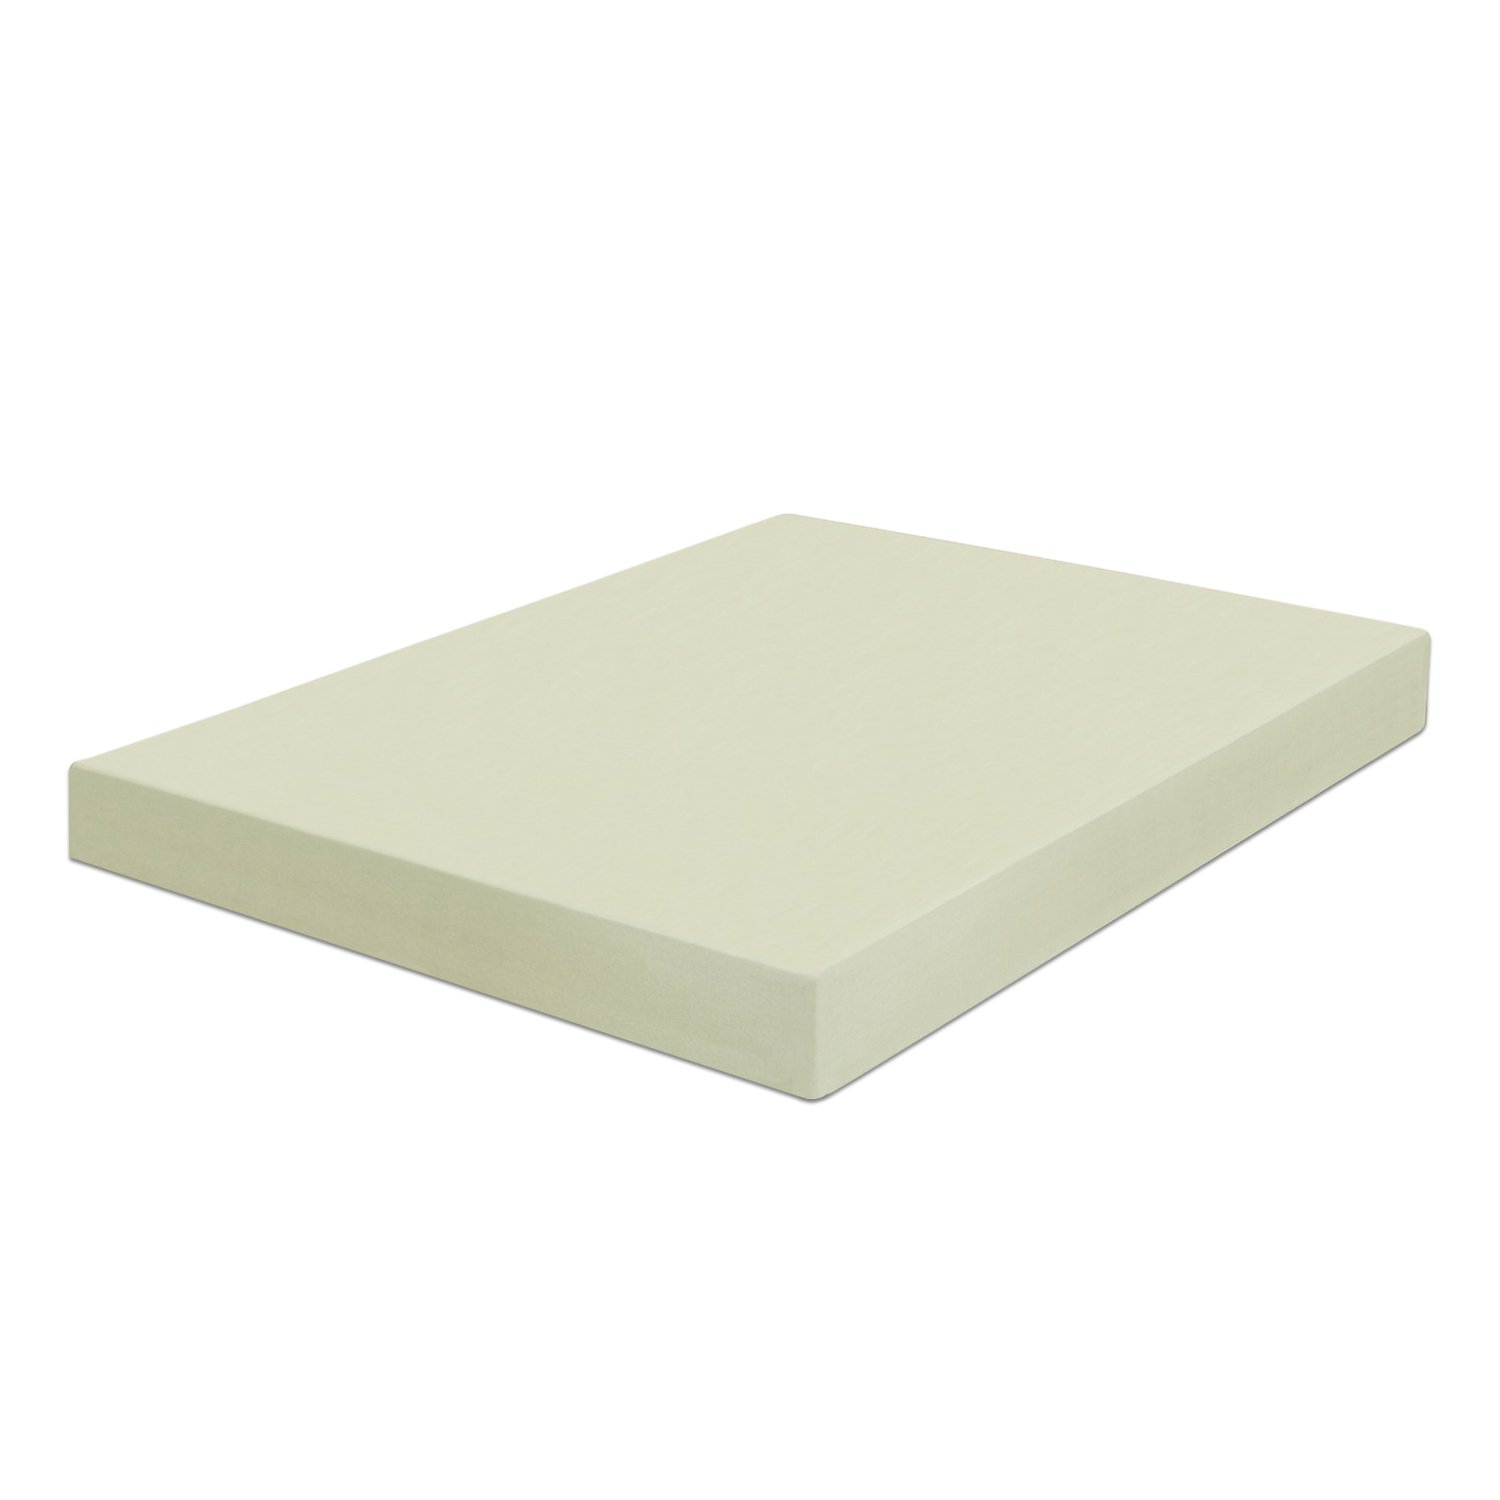 Best Price Mattress 6 Inch Memory Foam Mattress Queen New Free Shipping Ebay